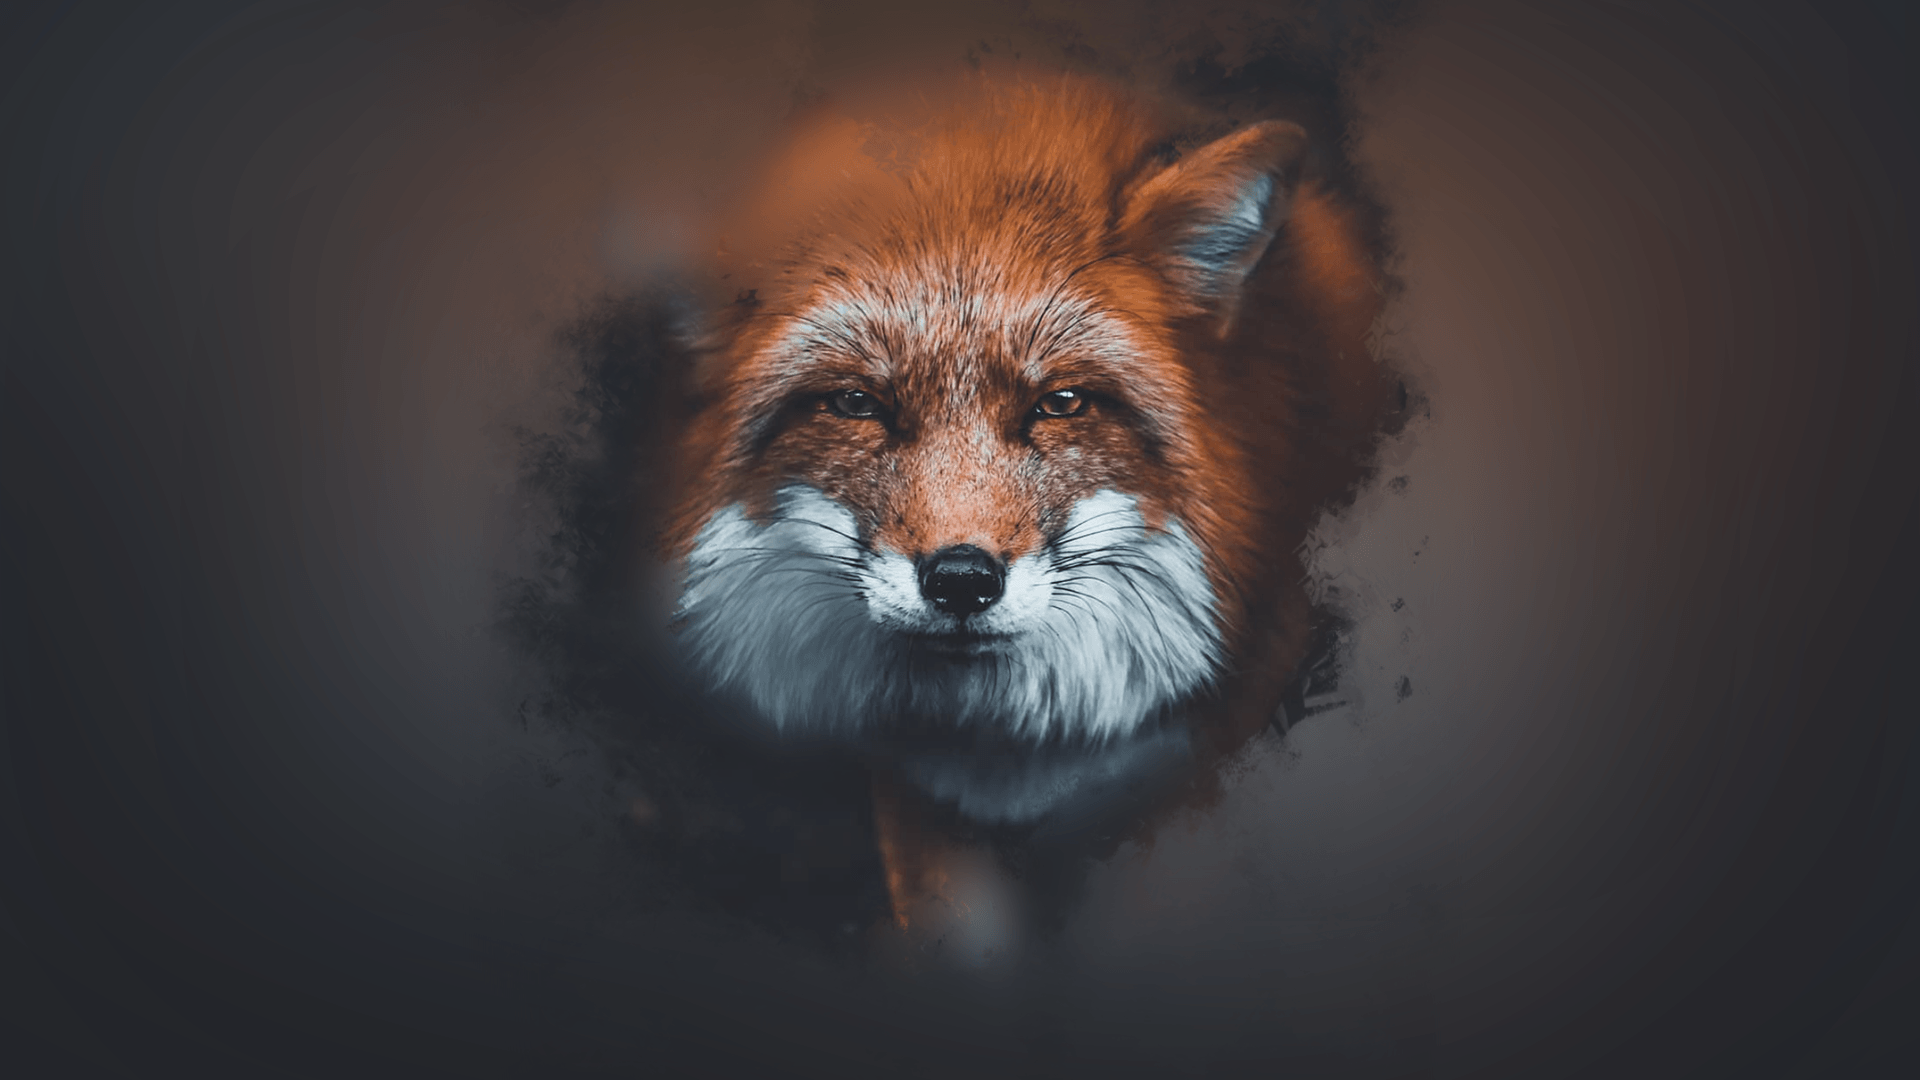 Fox wallpaper 1080p: fondos de pantalla